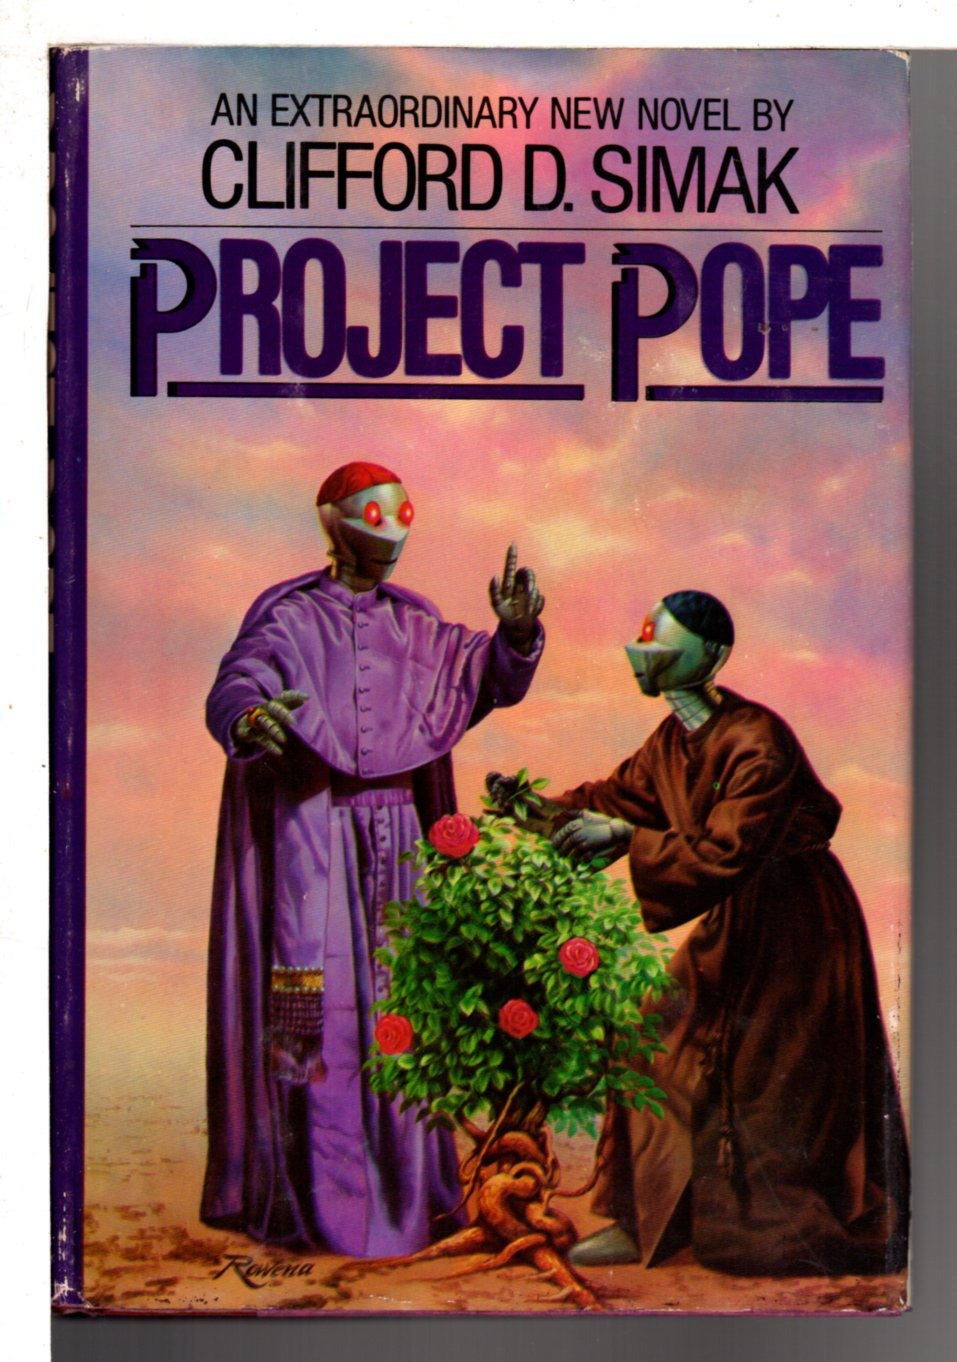 SIMAK, CLIFFORD D. - PROJECT POPE.